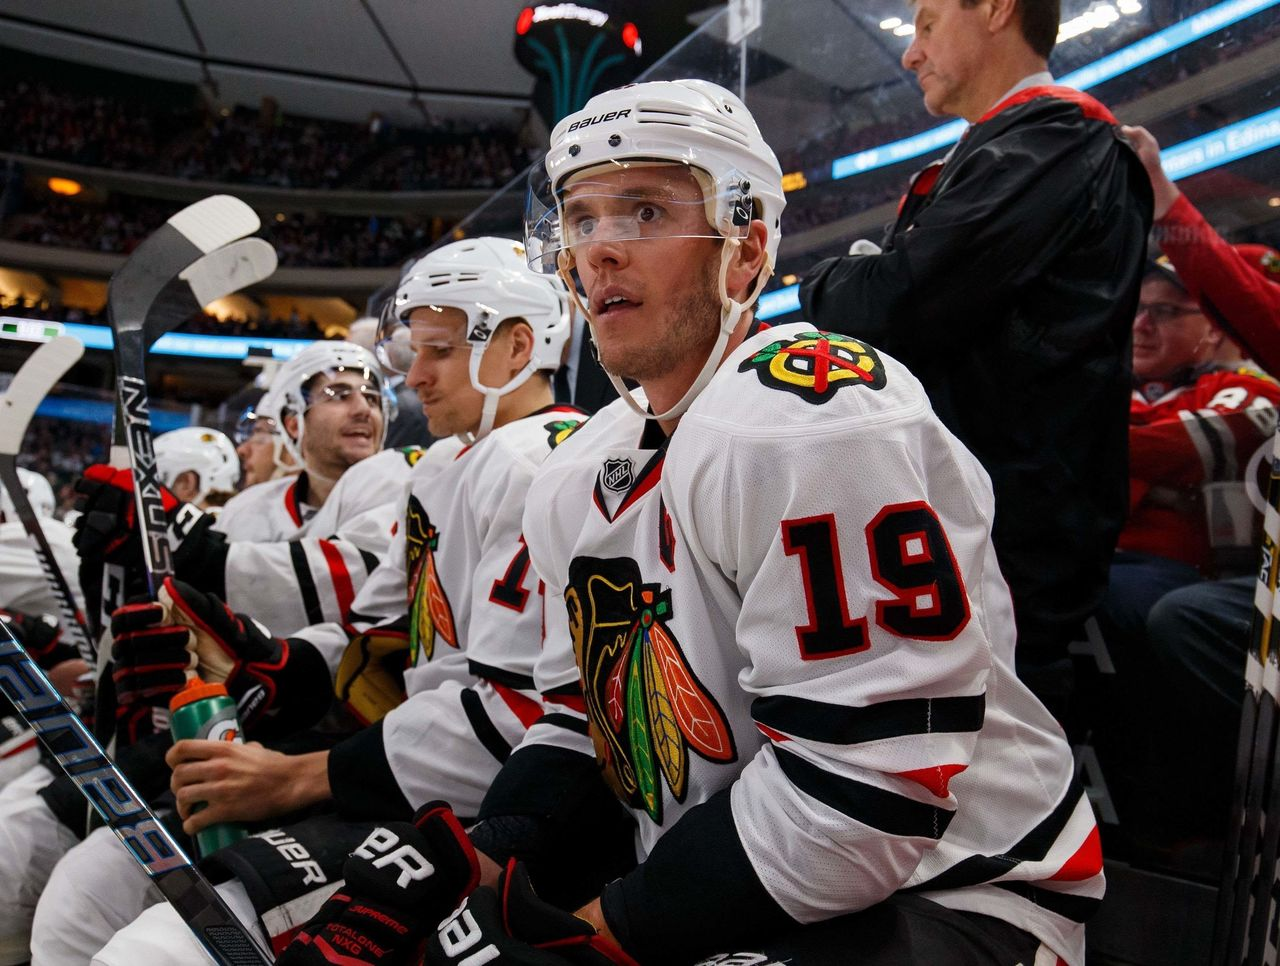 Cropped 2017 02 22t040919z 1979072672 nocid rtrmadp 3 nhl chicago blackhawks at minnesota wild